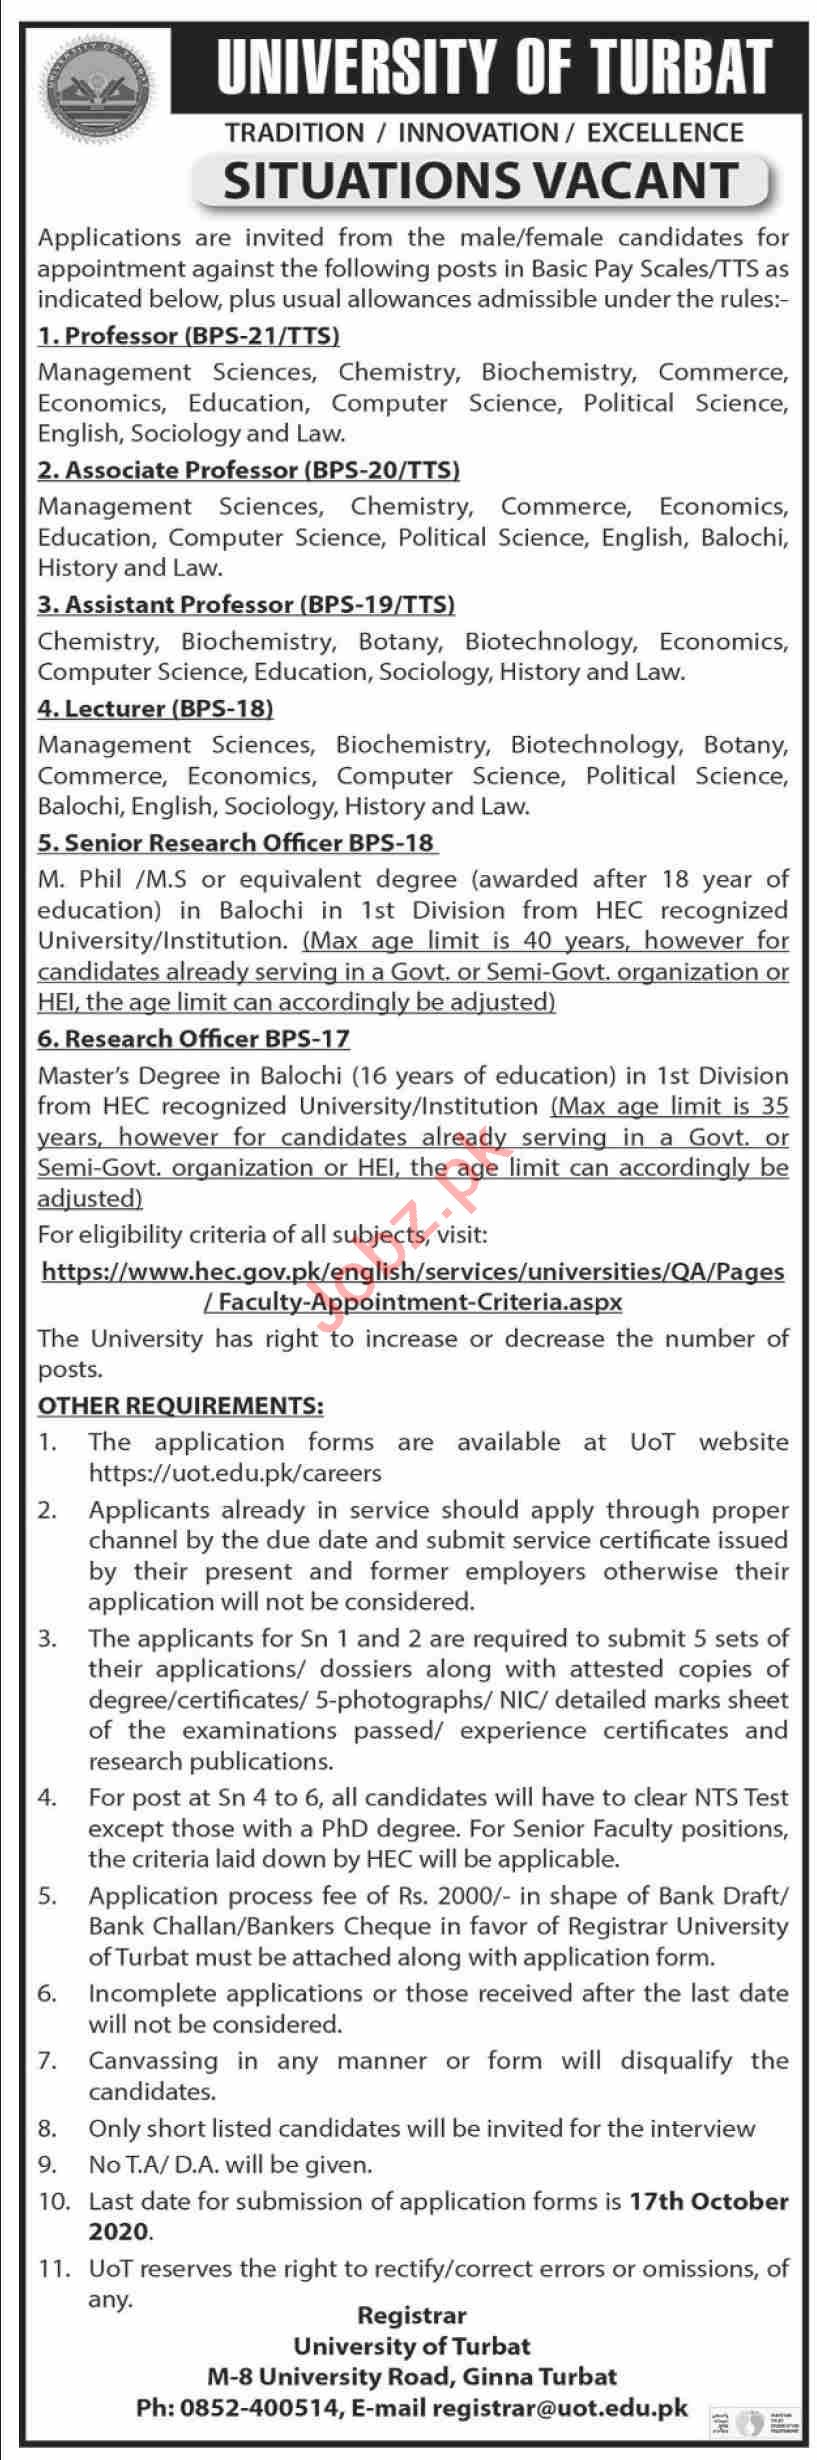 University of Turbat Jobs 2020 for Professors